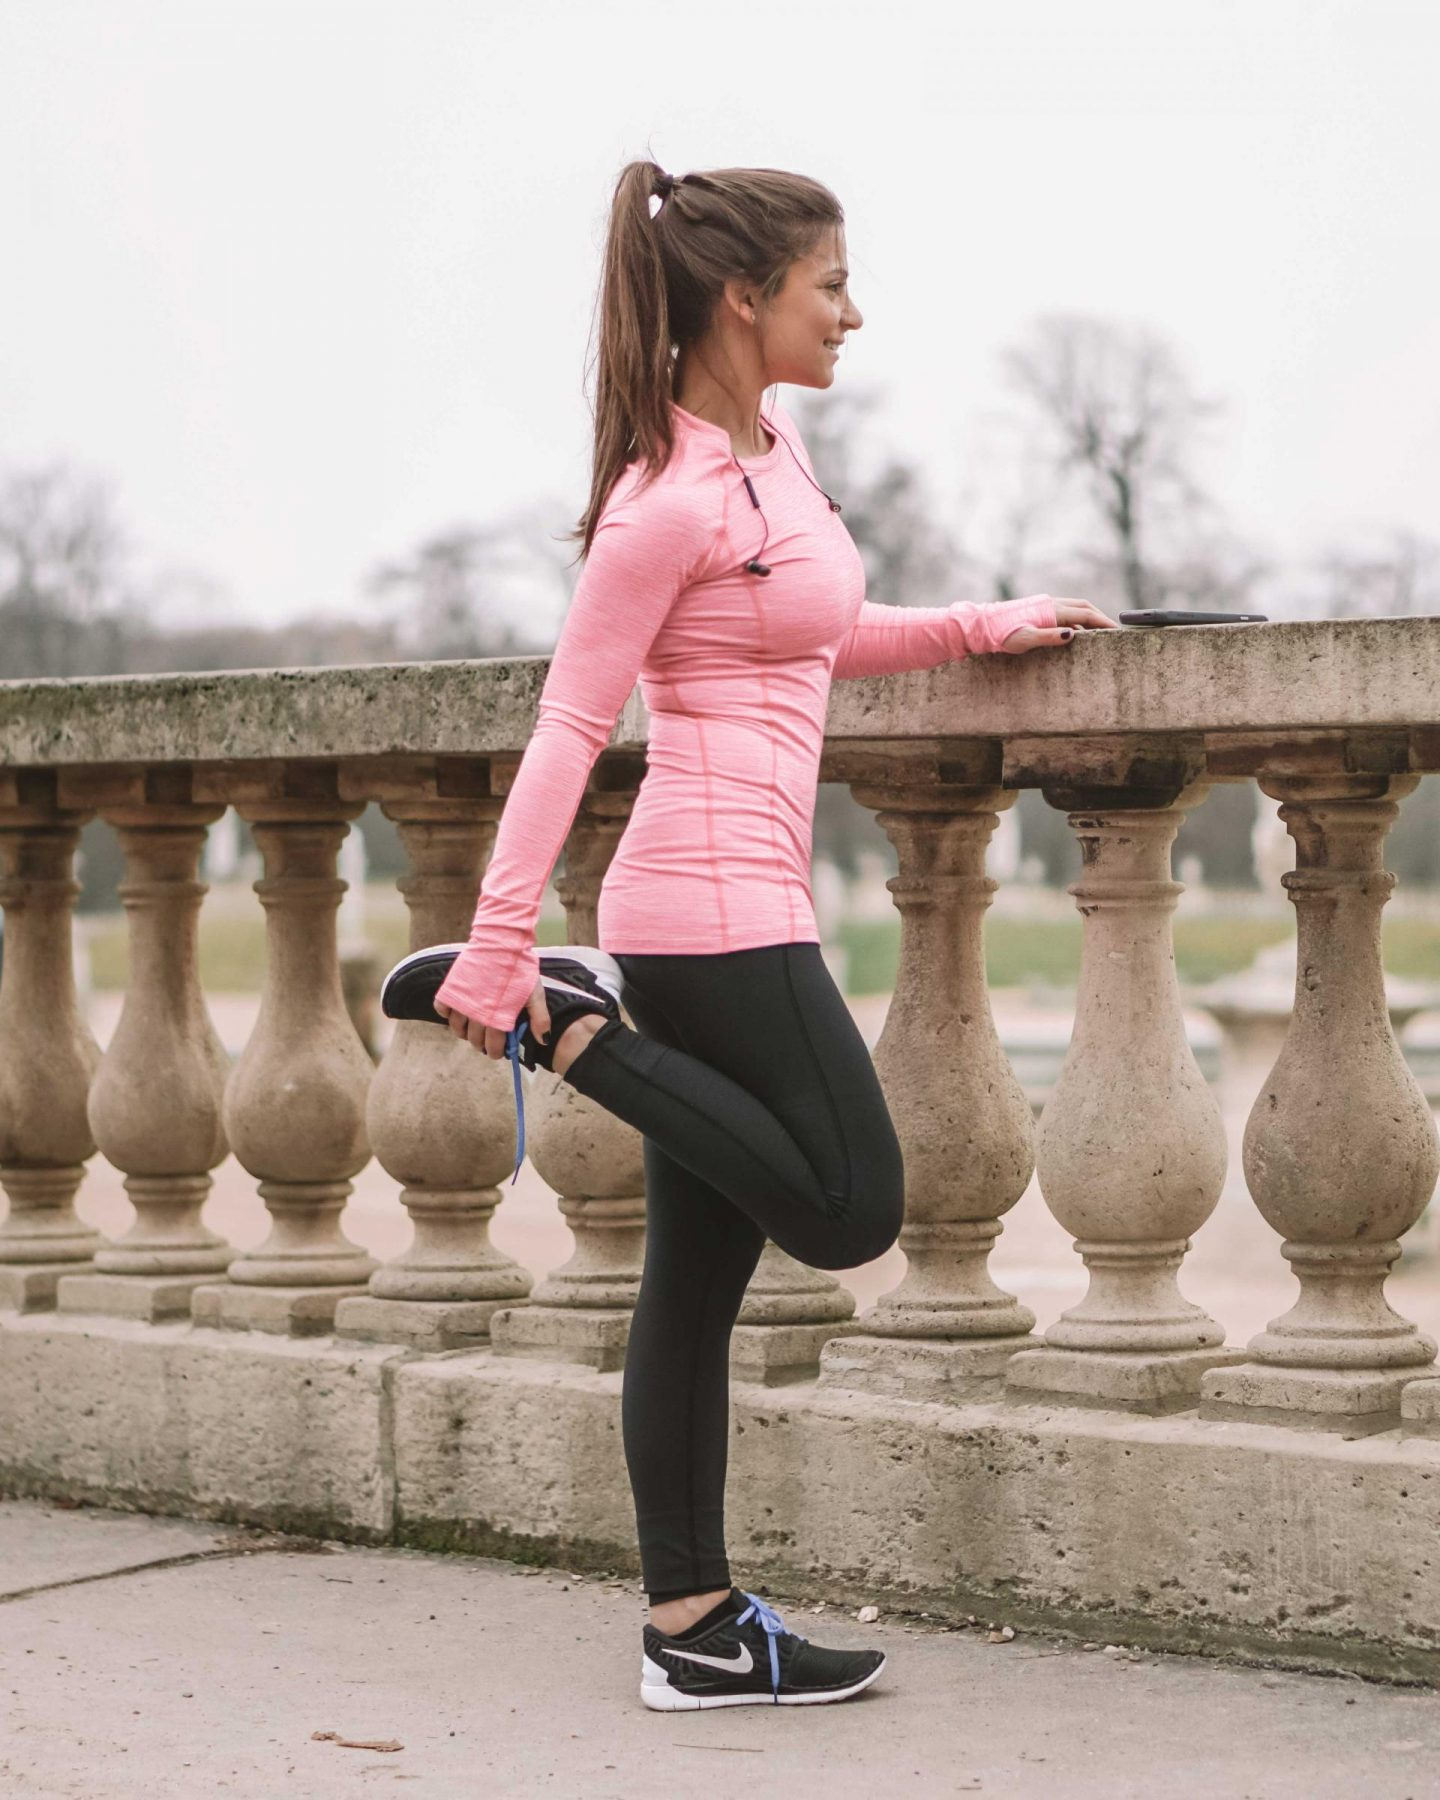 What to Wear When Running: 5 Best Running Outfits • Petite in Paris